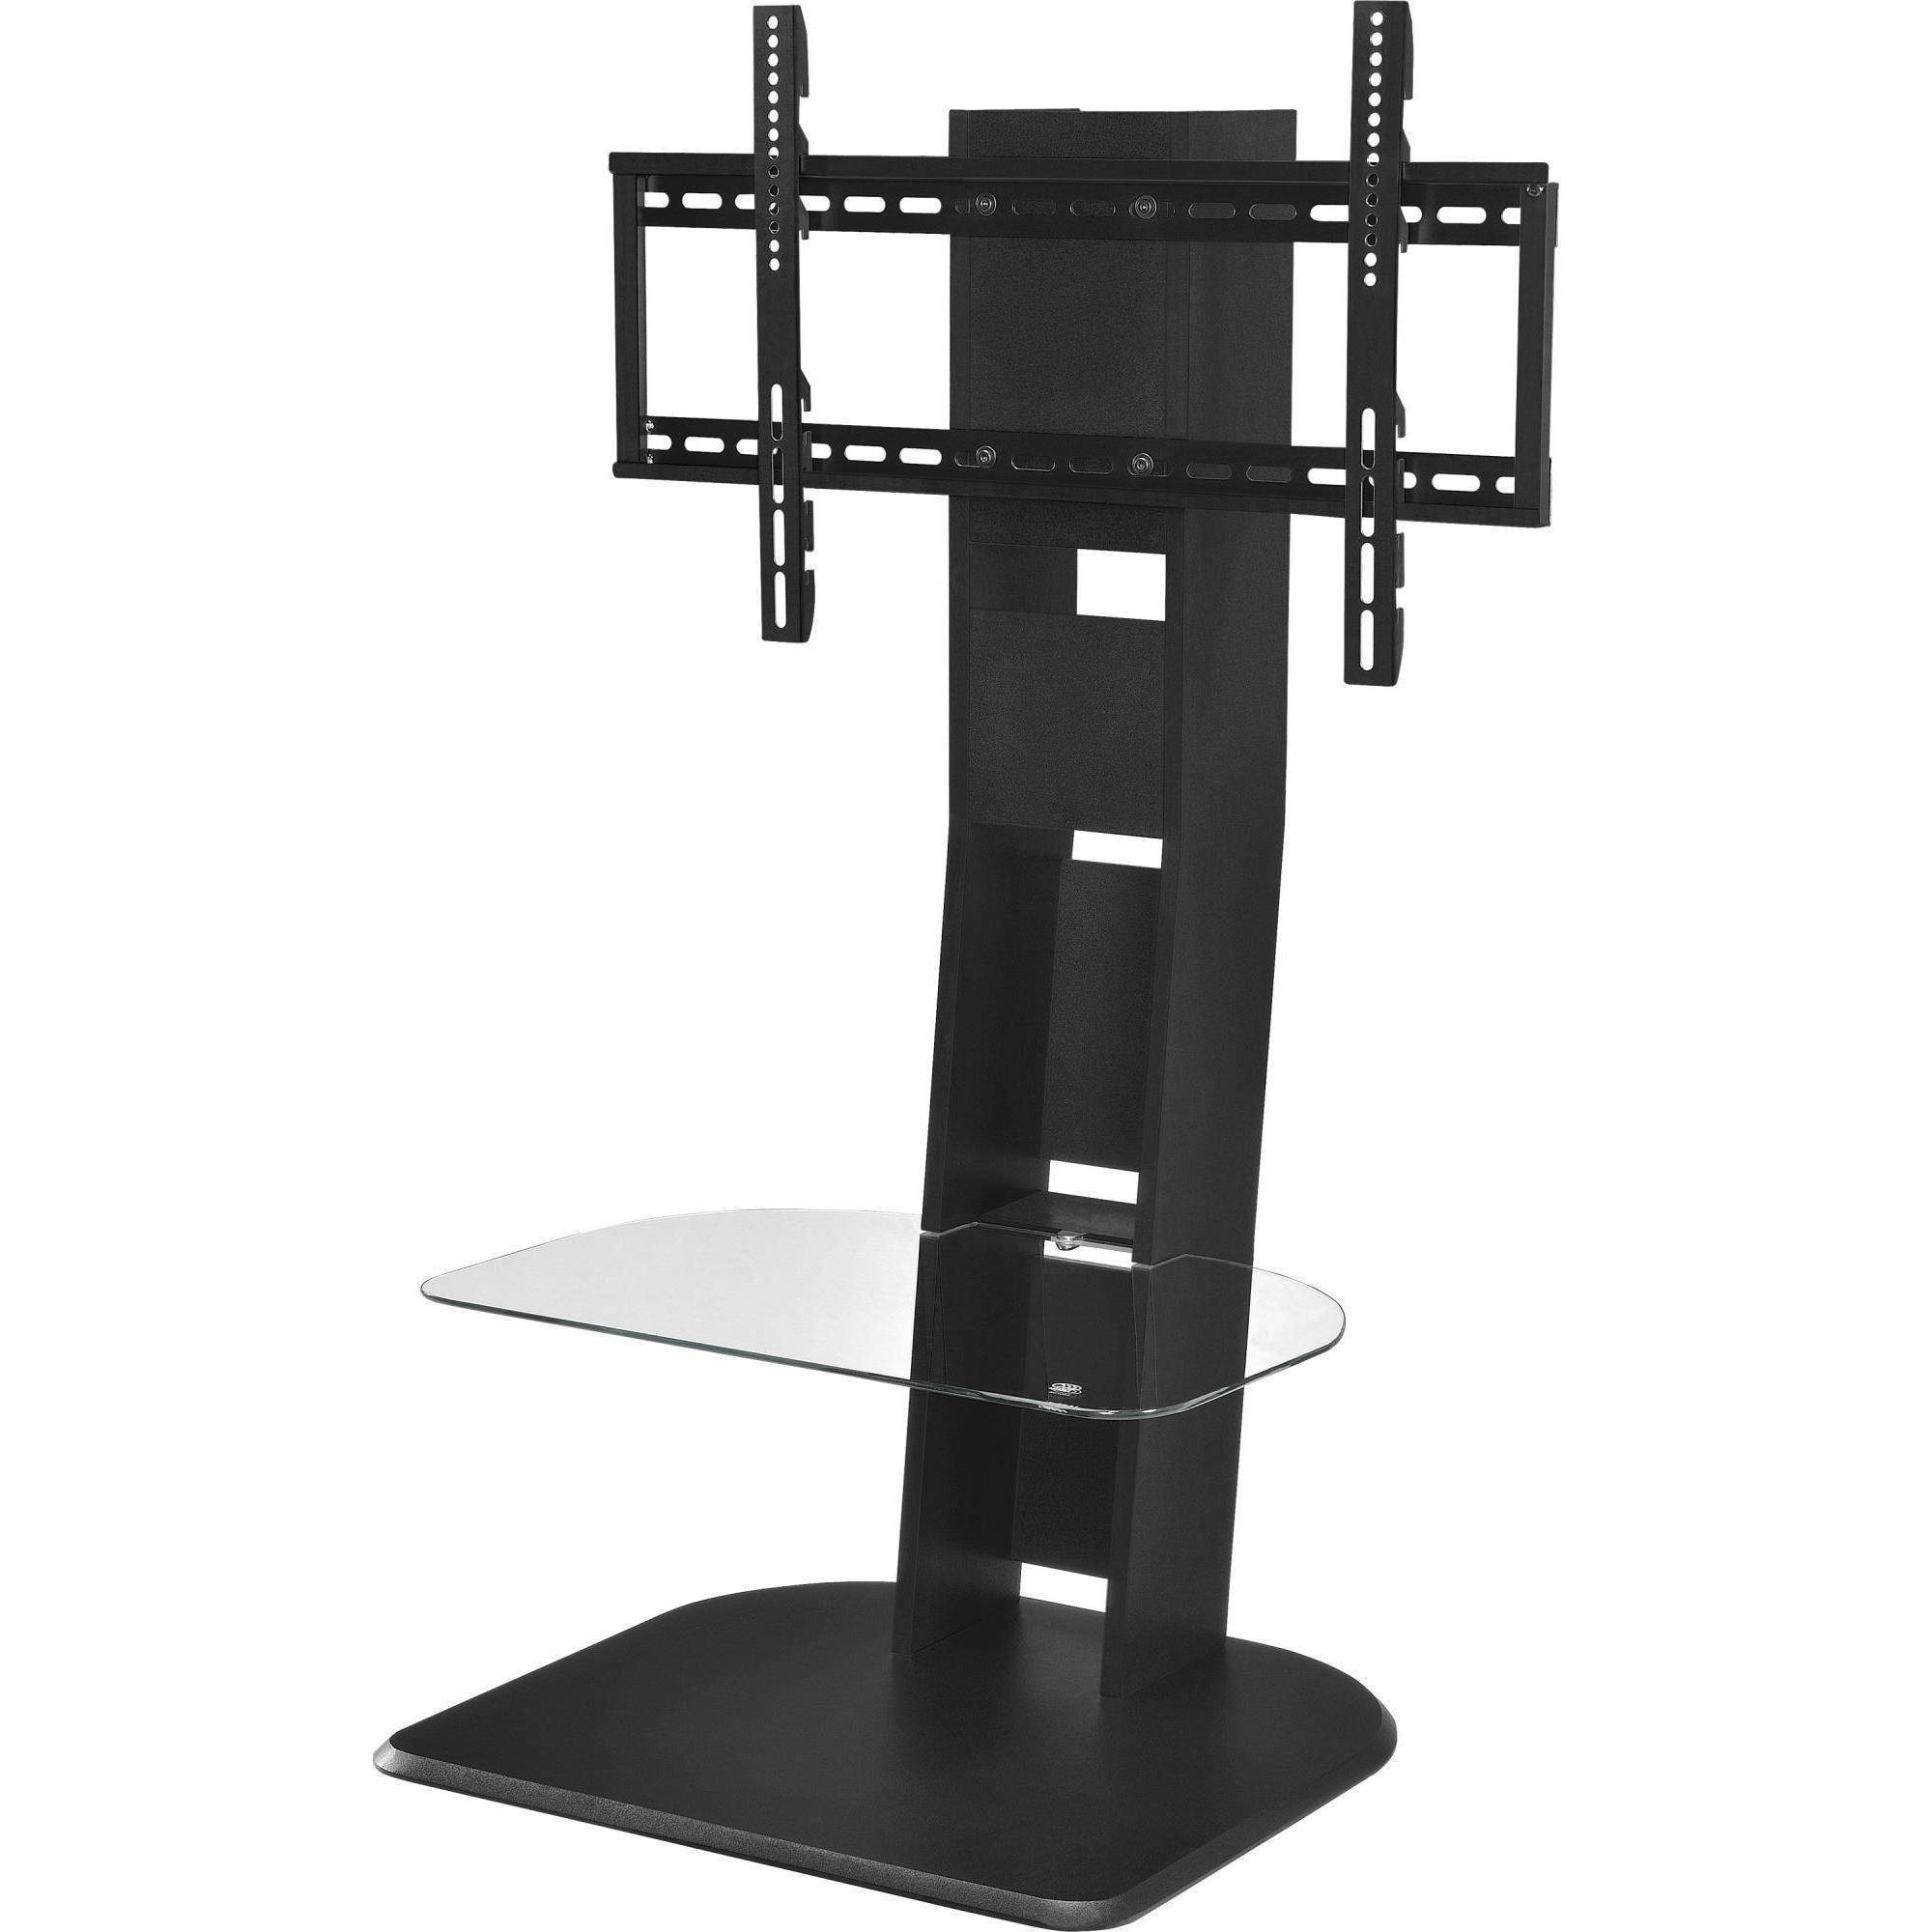 New Top Quality Tv Stand With Mount For Tvs Up To 50 Throughout Glass Shelf With Tv Stands (View 12 of 20)